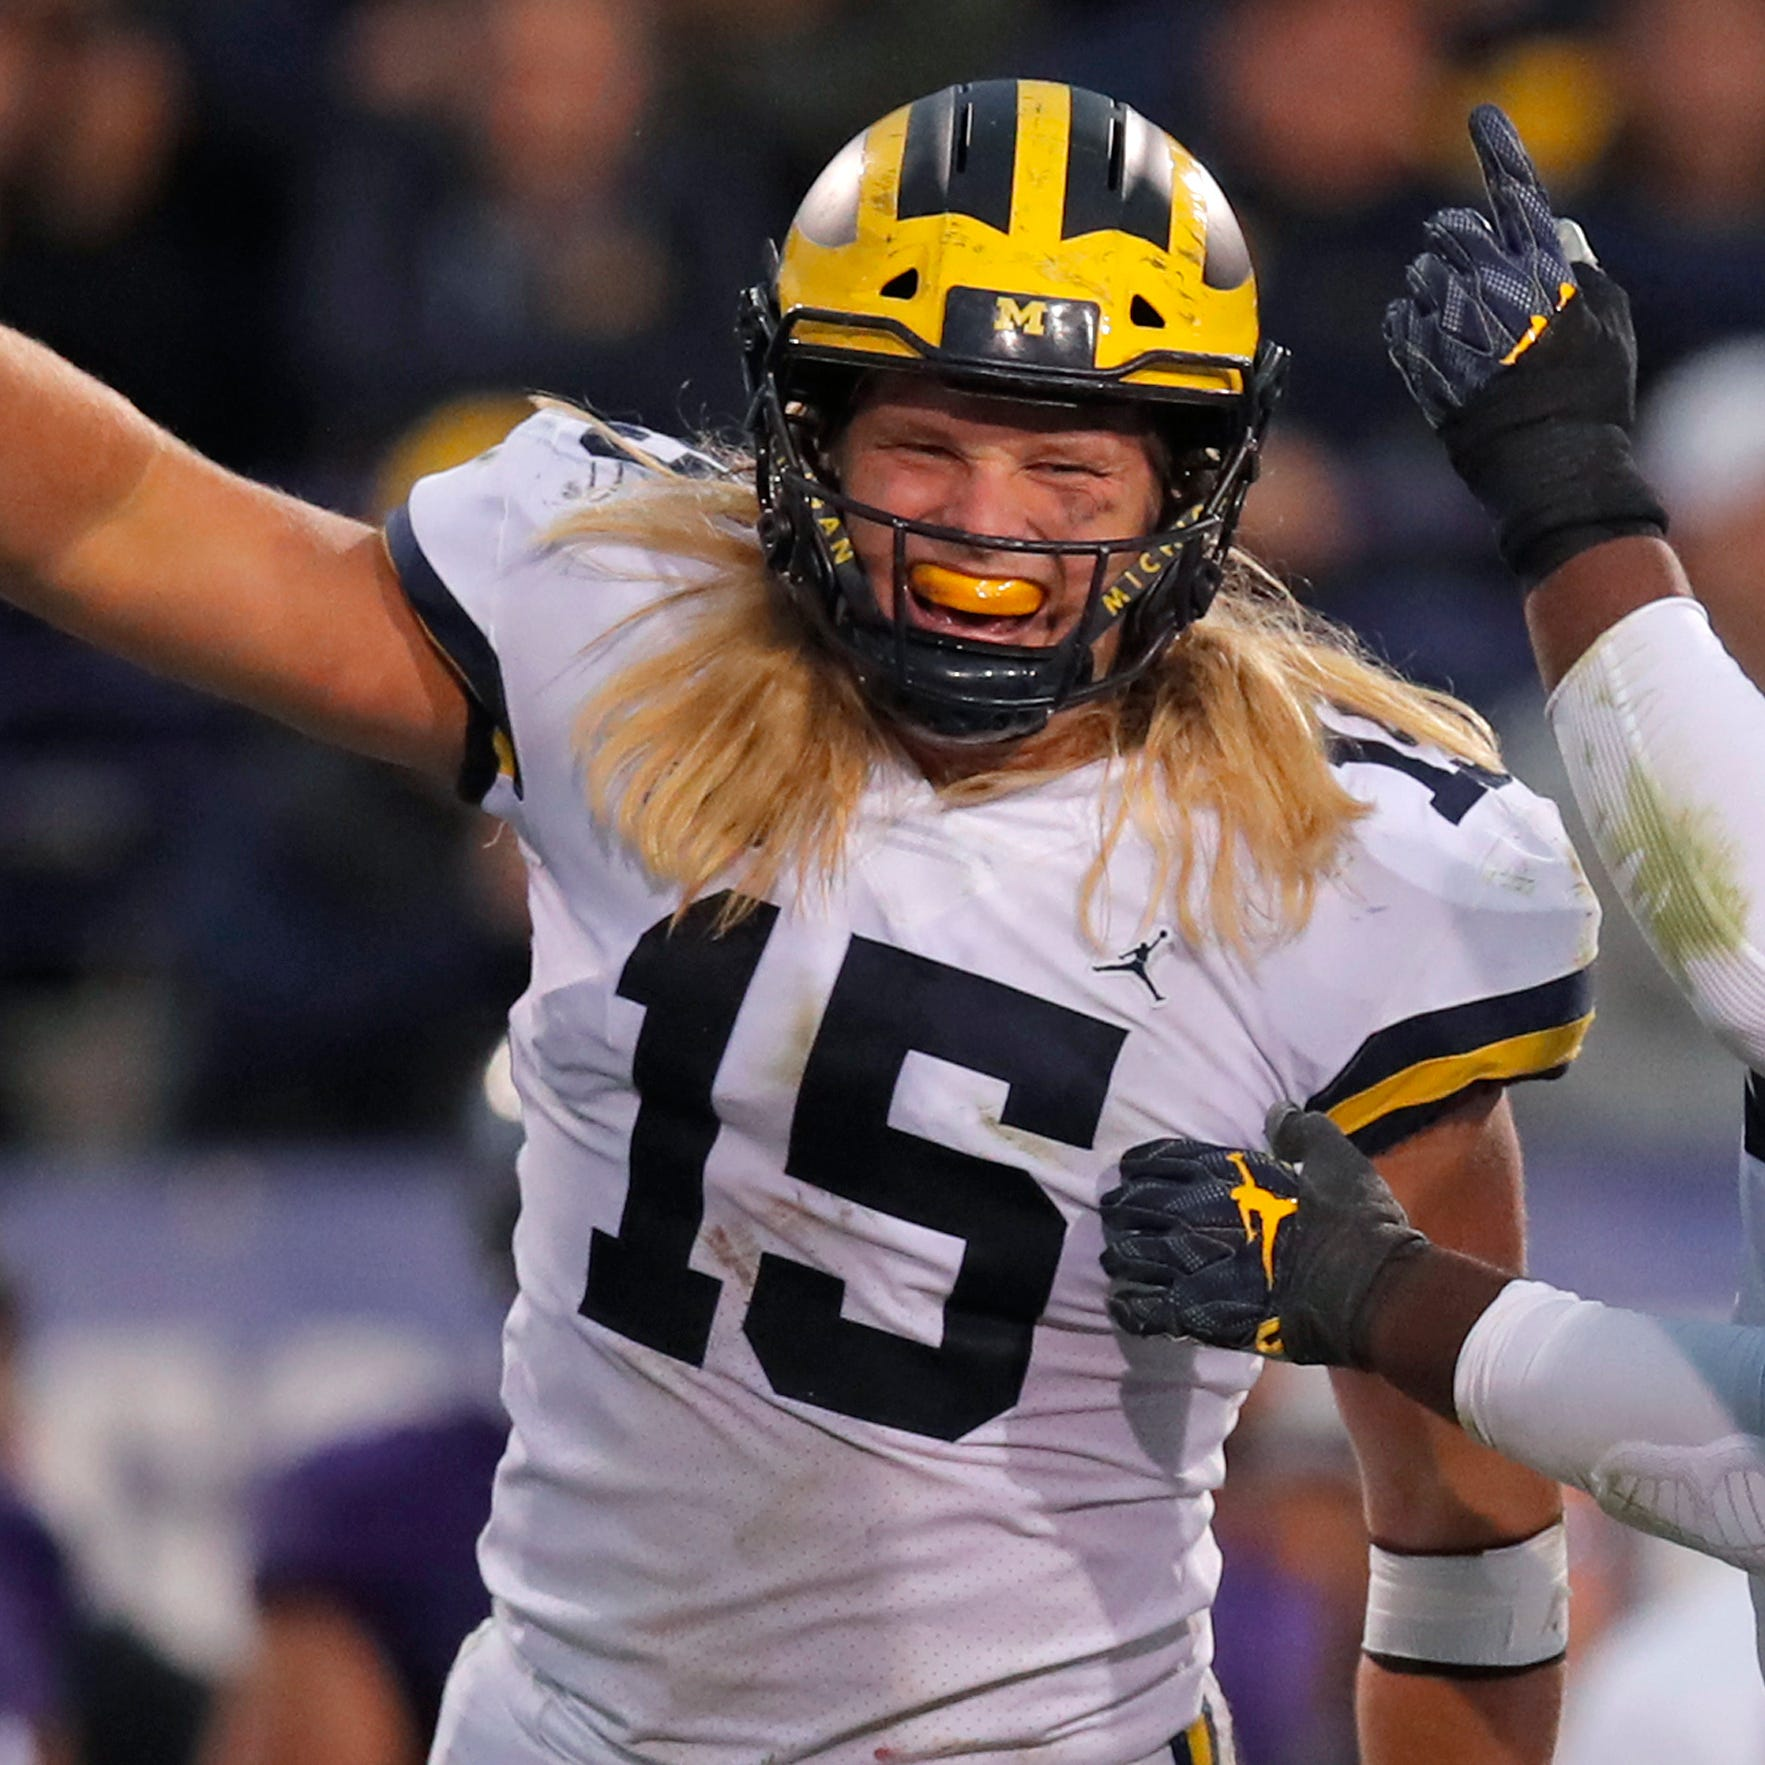 Michigan football's 'revenge tour' could end woeful road losing streak